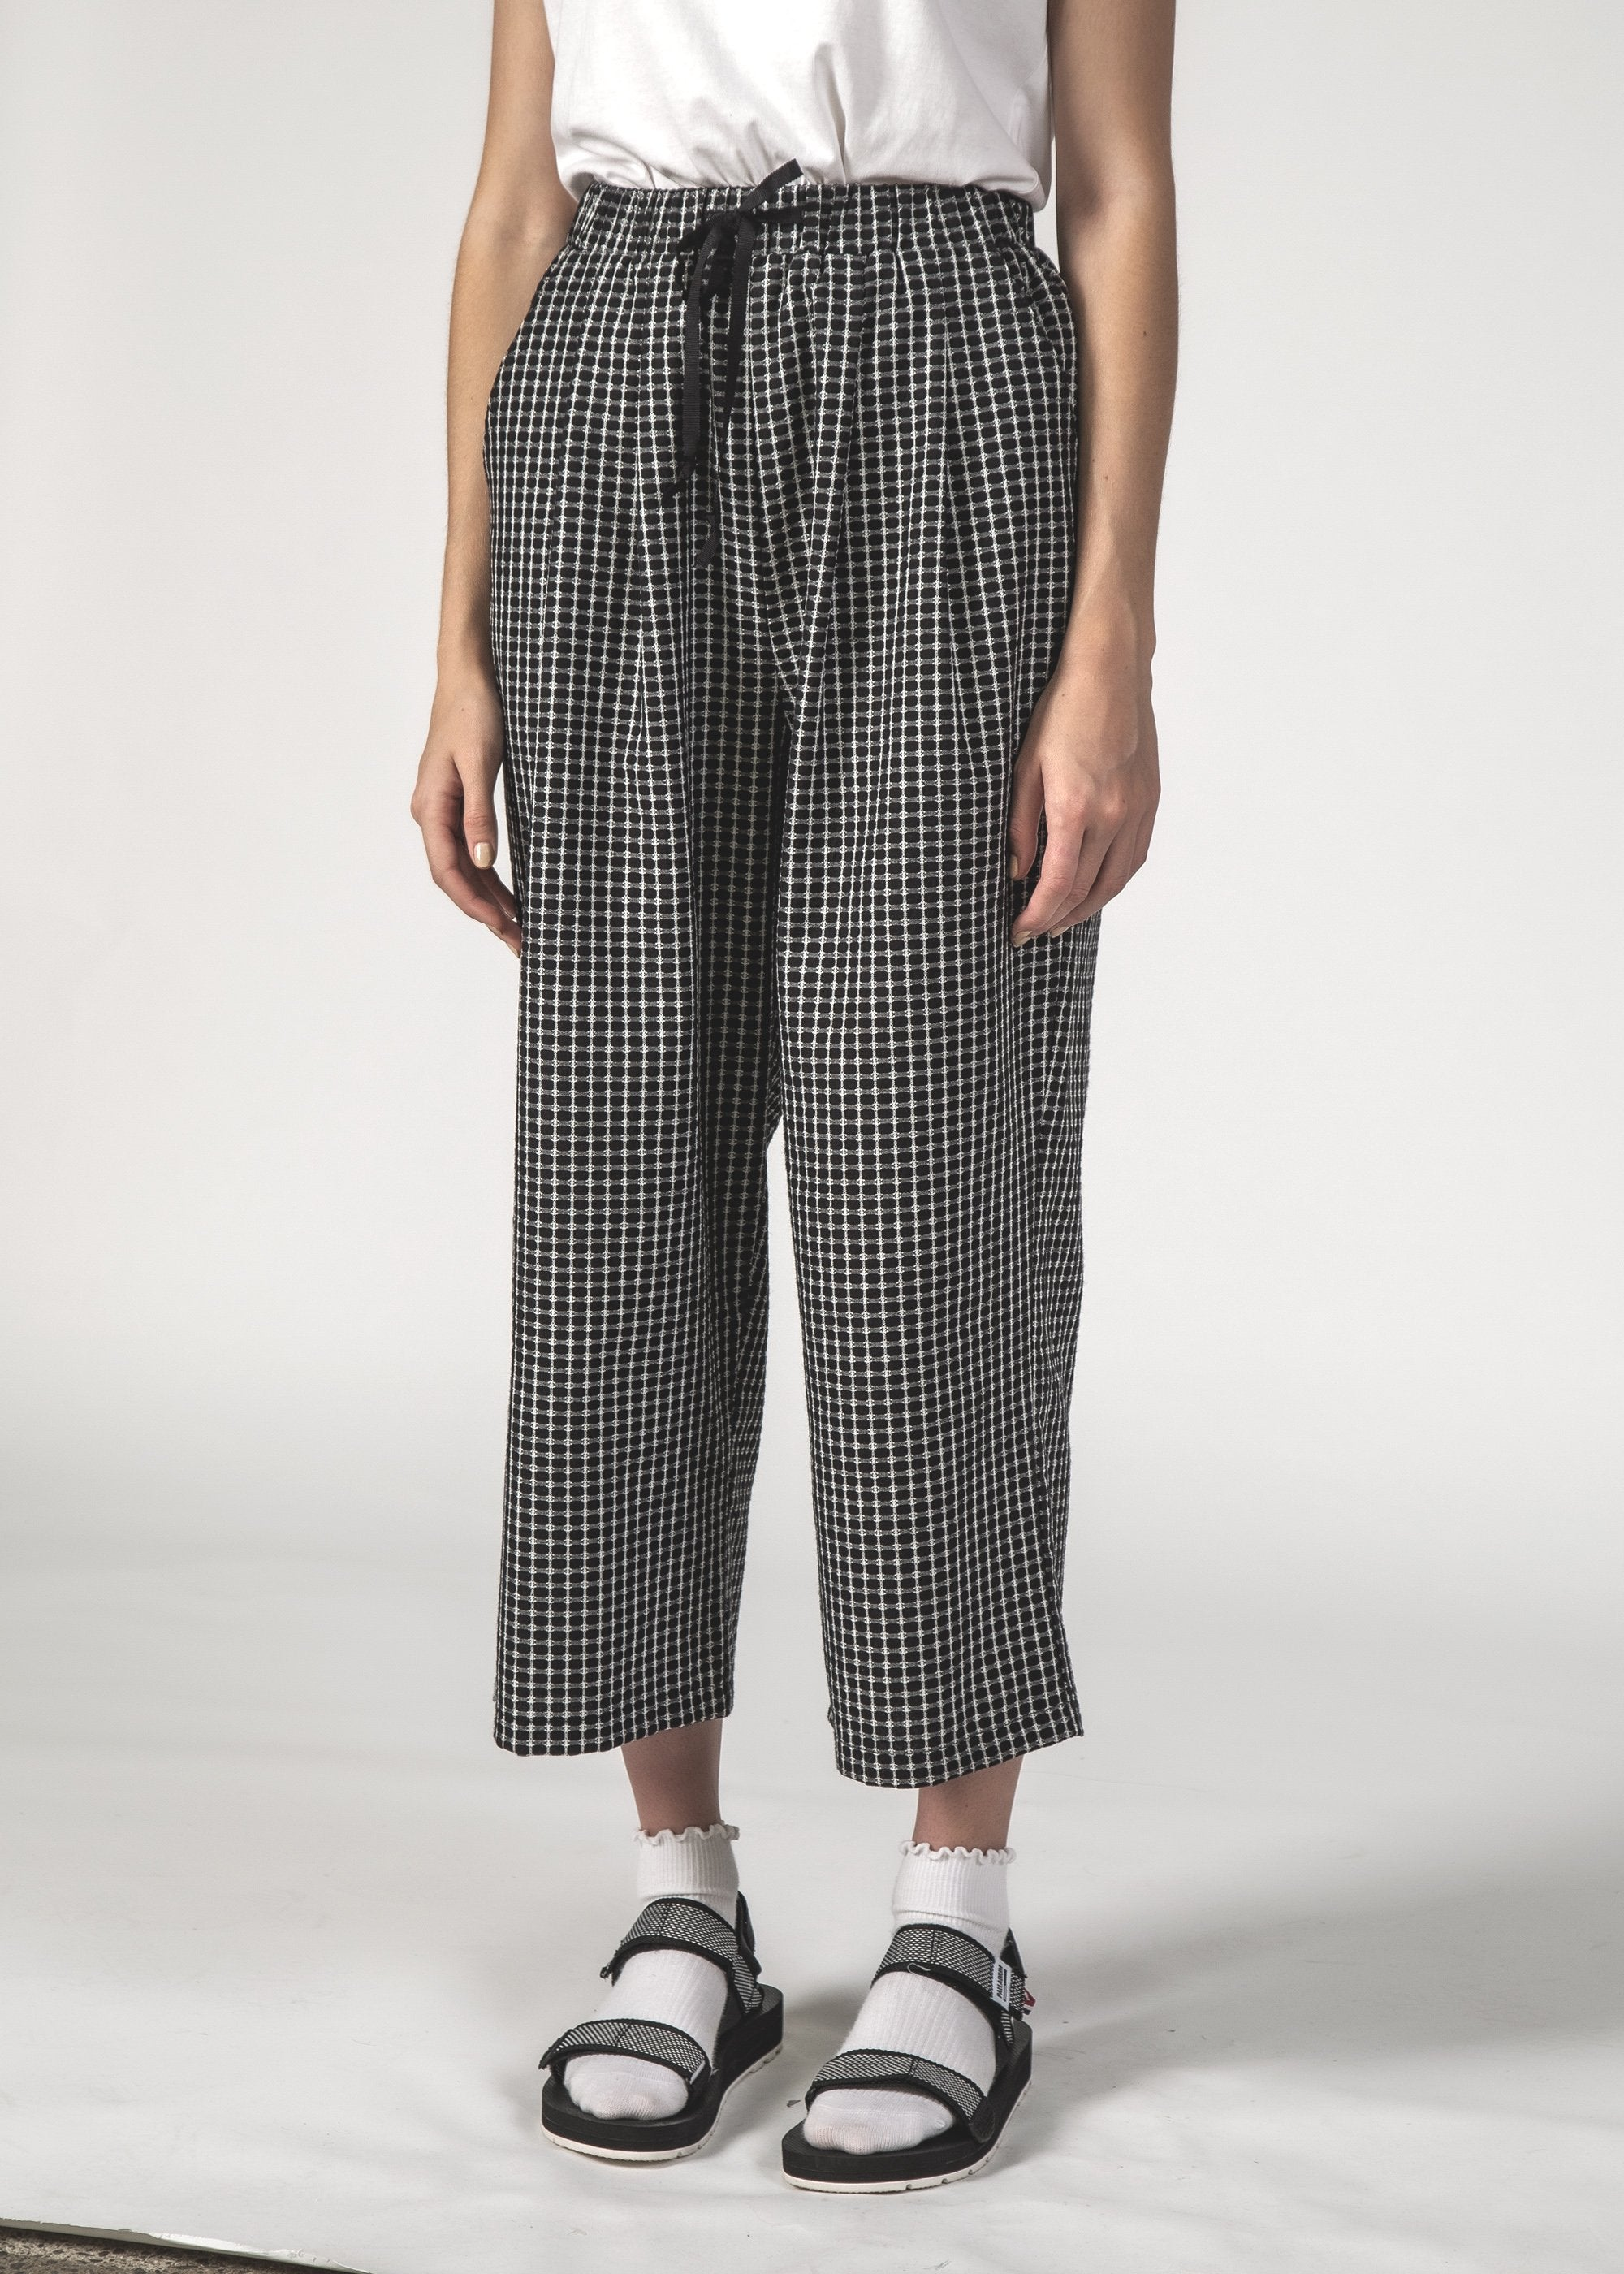 CRUISE PANT - Black Crosshatch